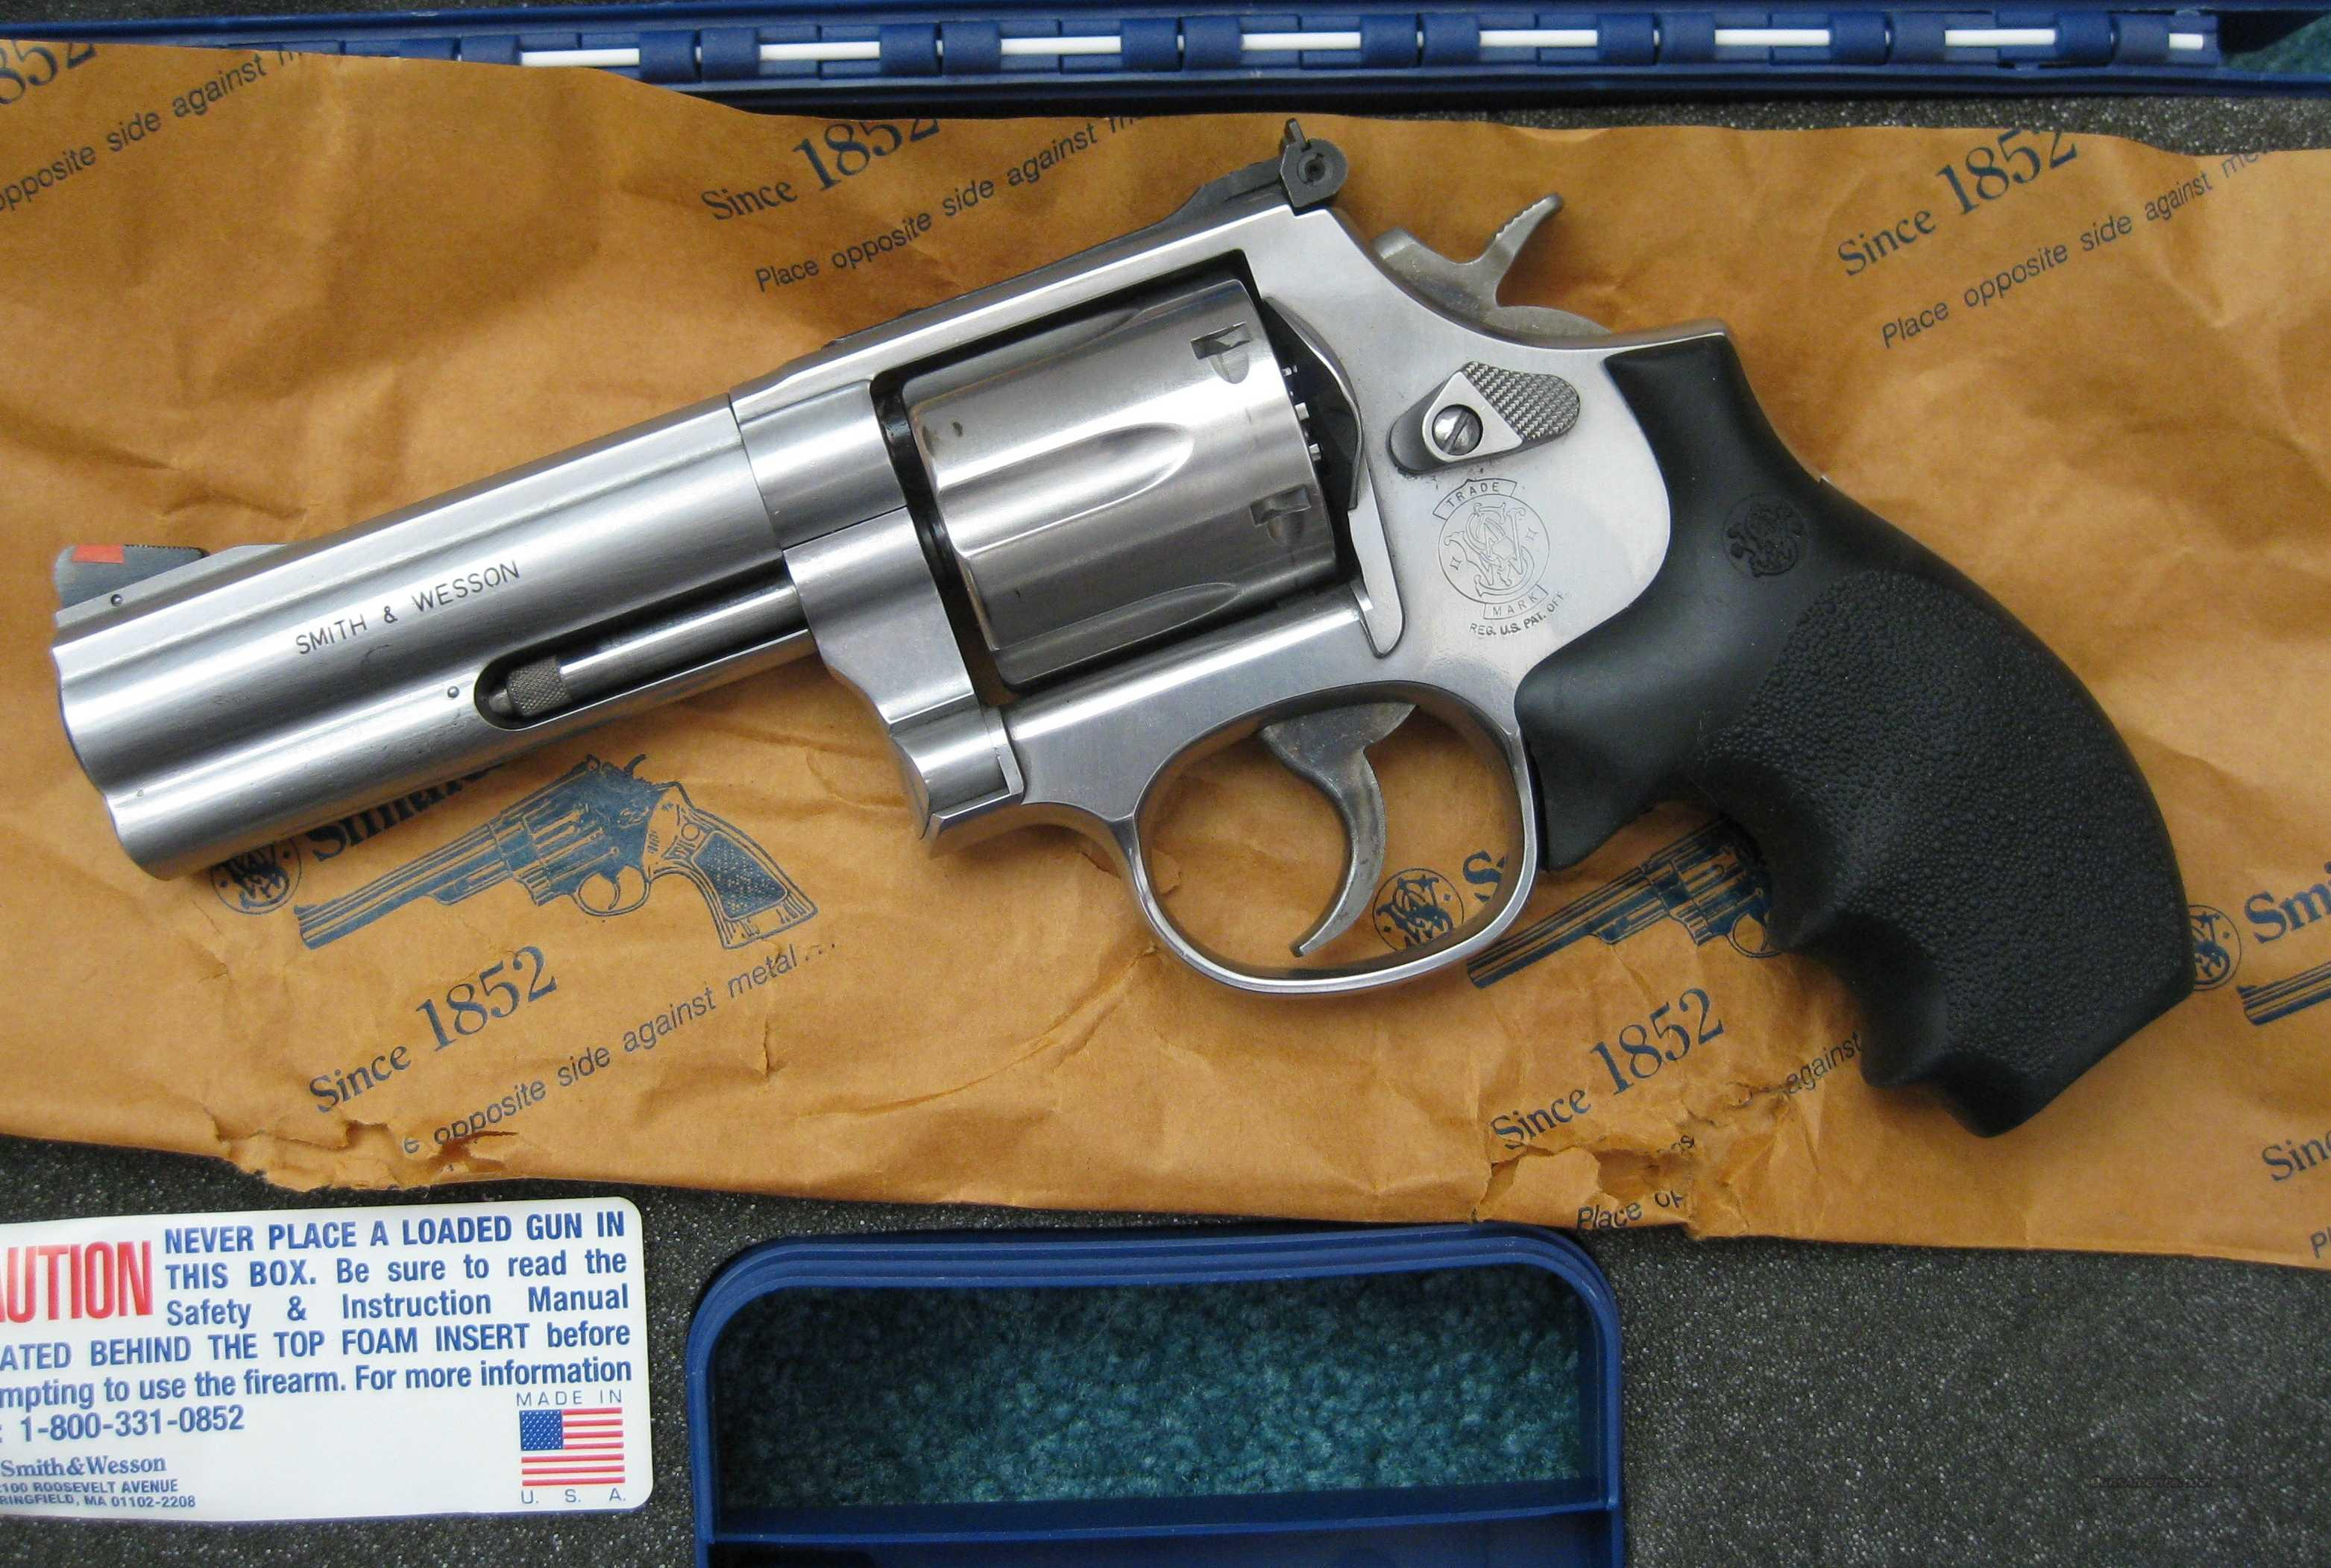 S&W 686-5 4inch Stainless .357 Mag  Guns > Pistols > Smith & Wesson Revolvers > Full Frame Revolver